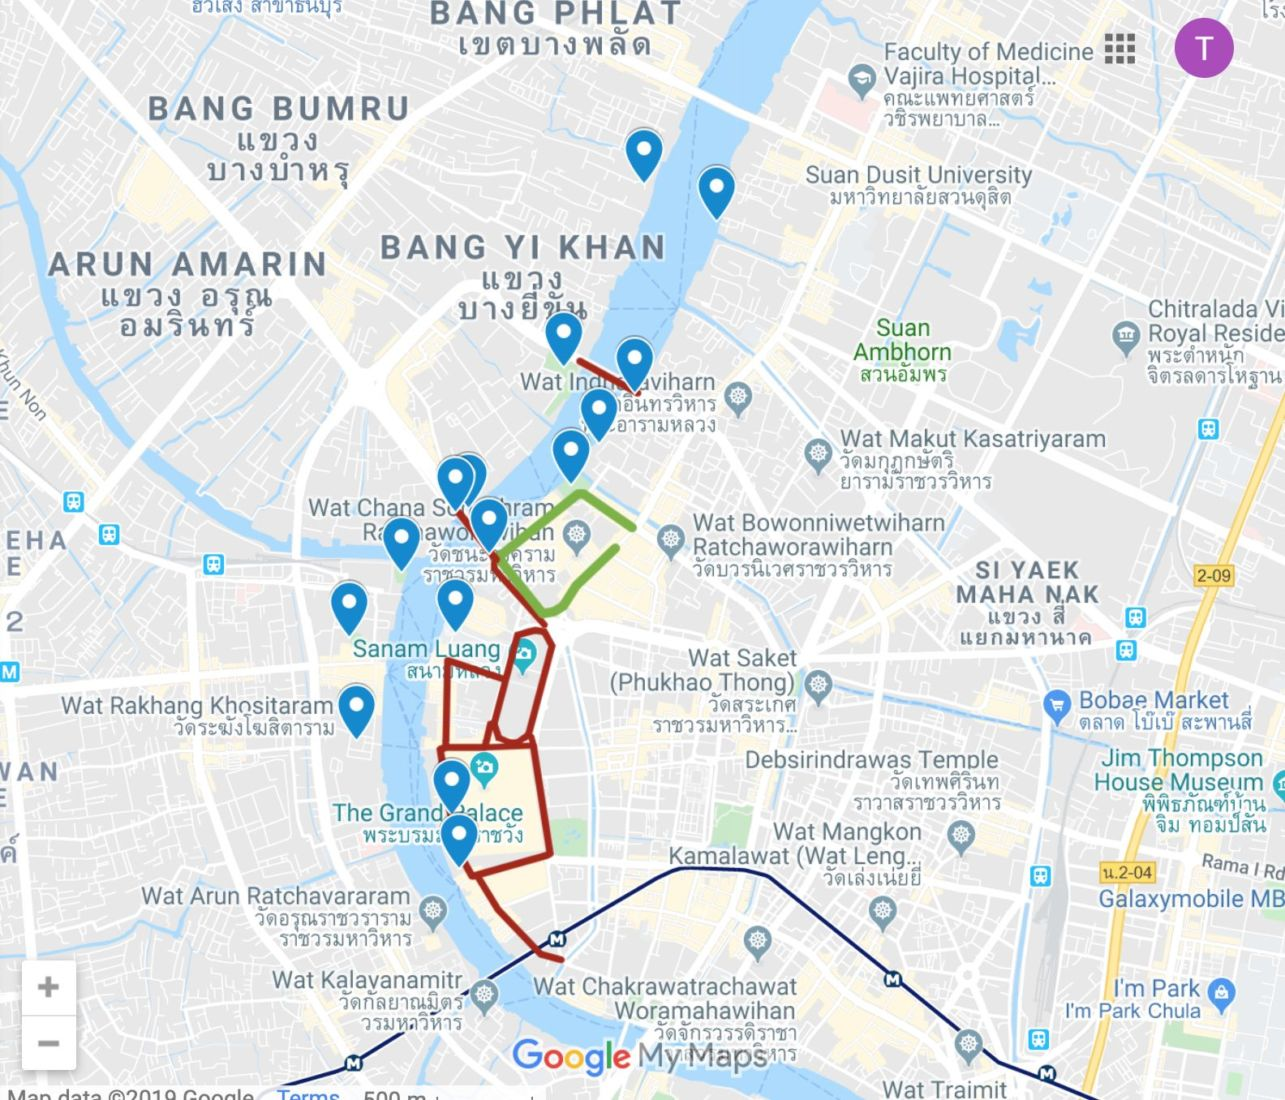 Transport and viewing locations for today's Royal Barge Procession in Bangkok | News by The Thaiger